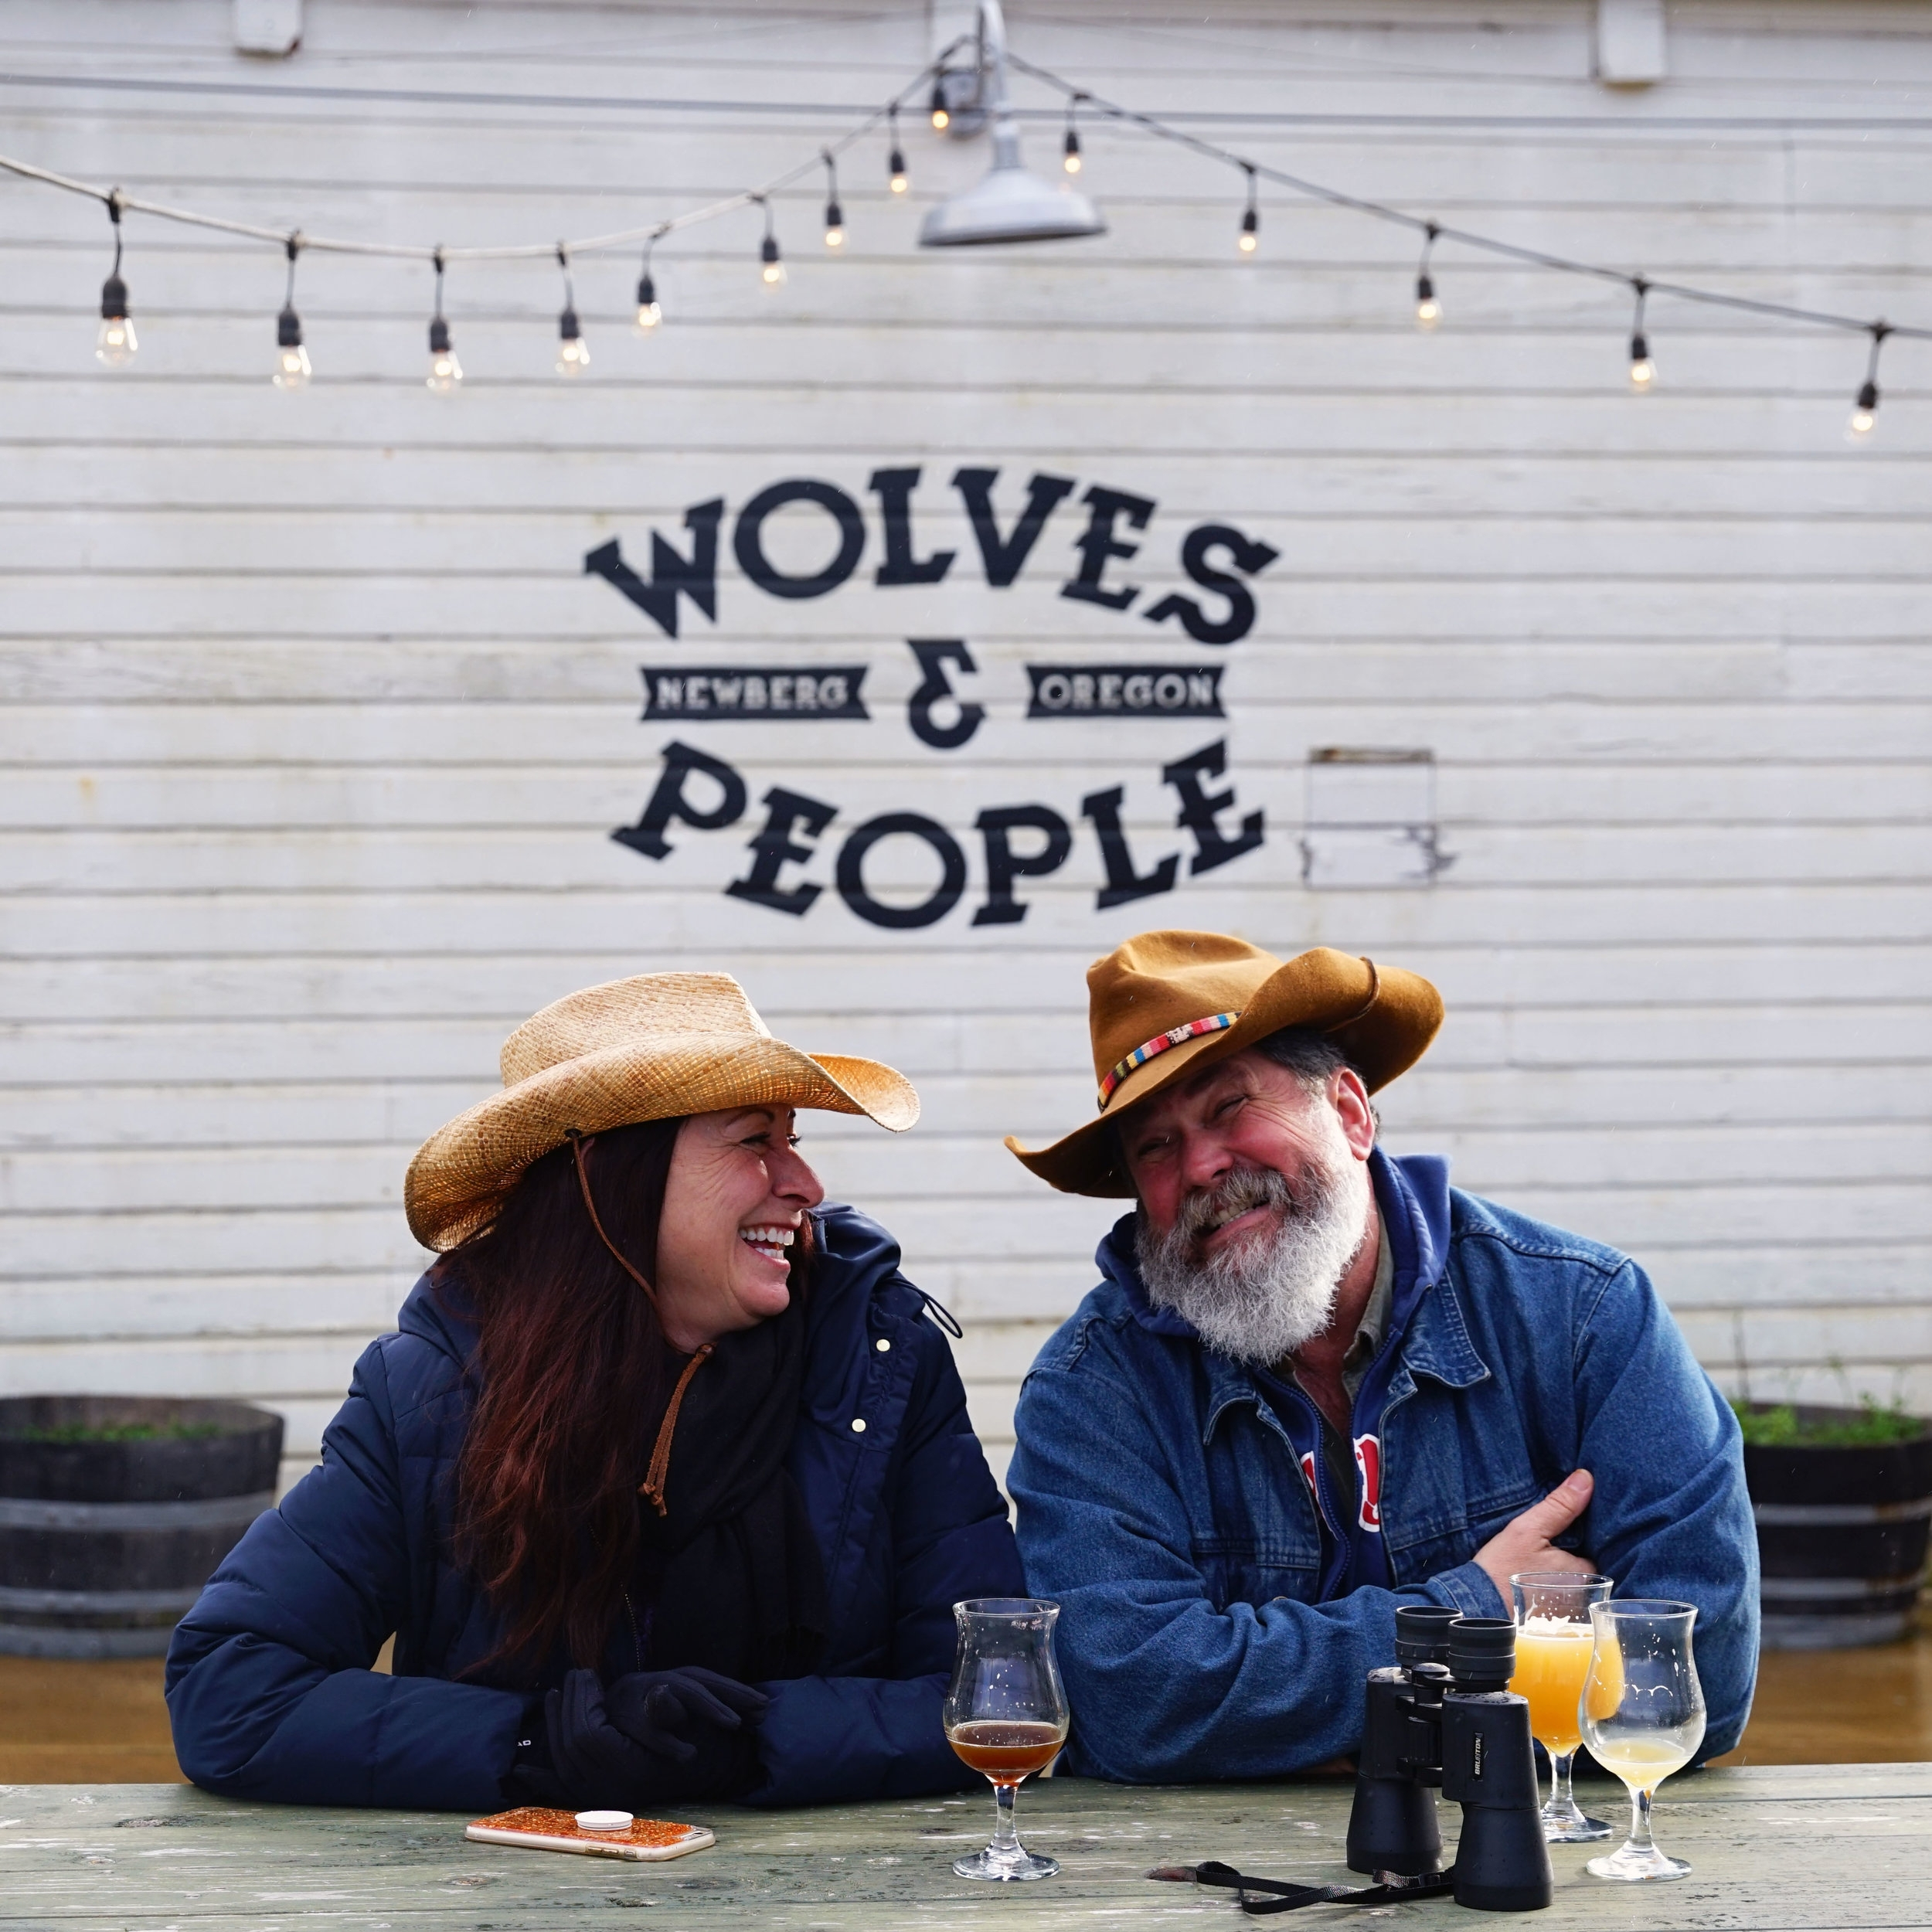 Wolves & People Newberg